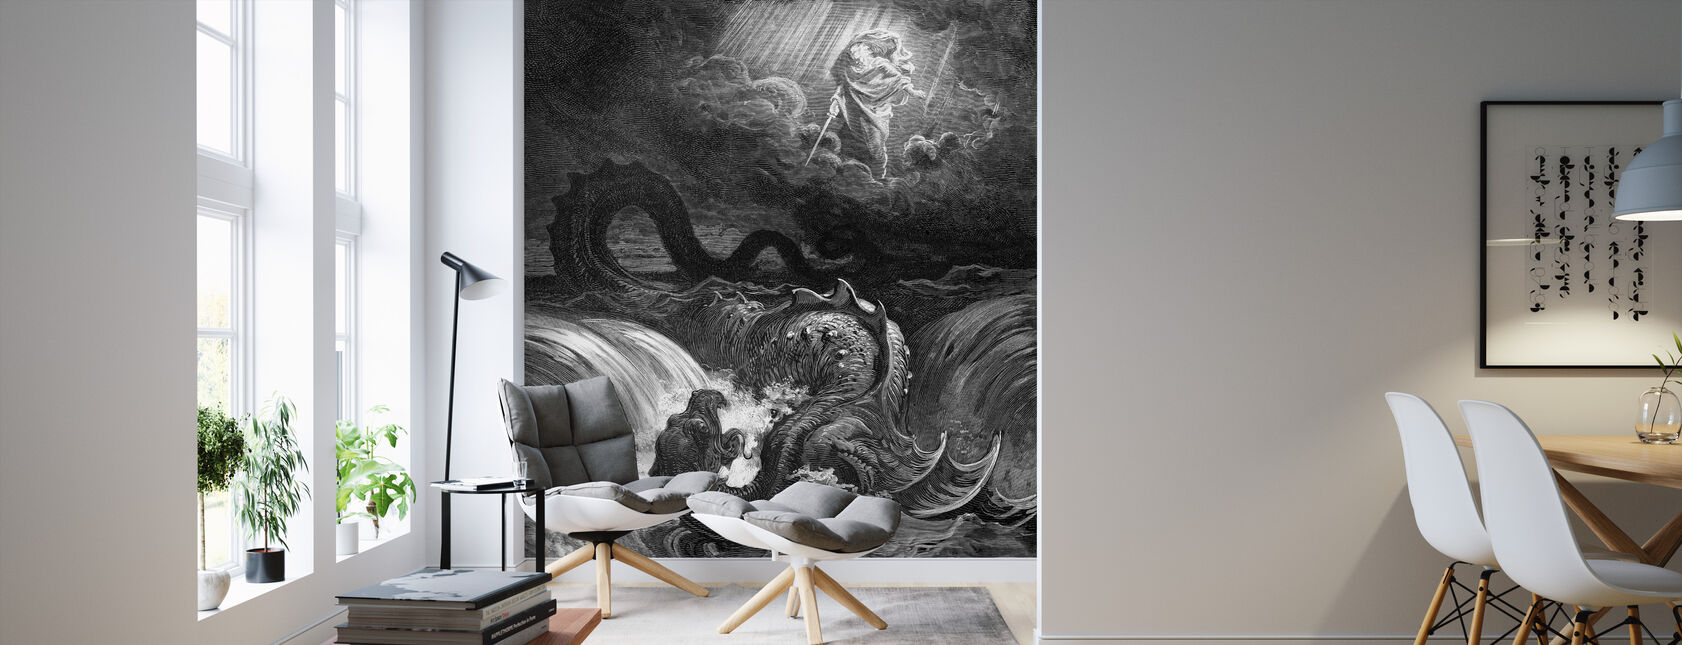 Esaias Syn - Gustave Dore - Wallpaper - Living Room